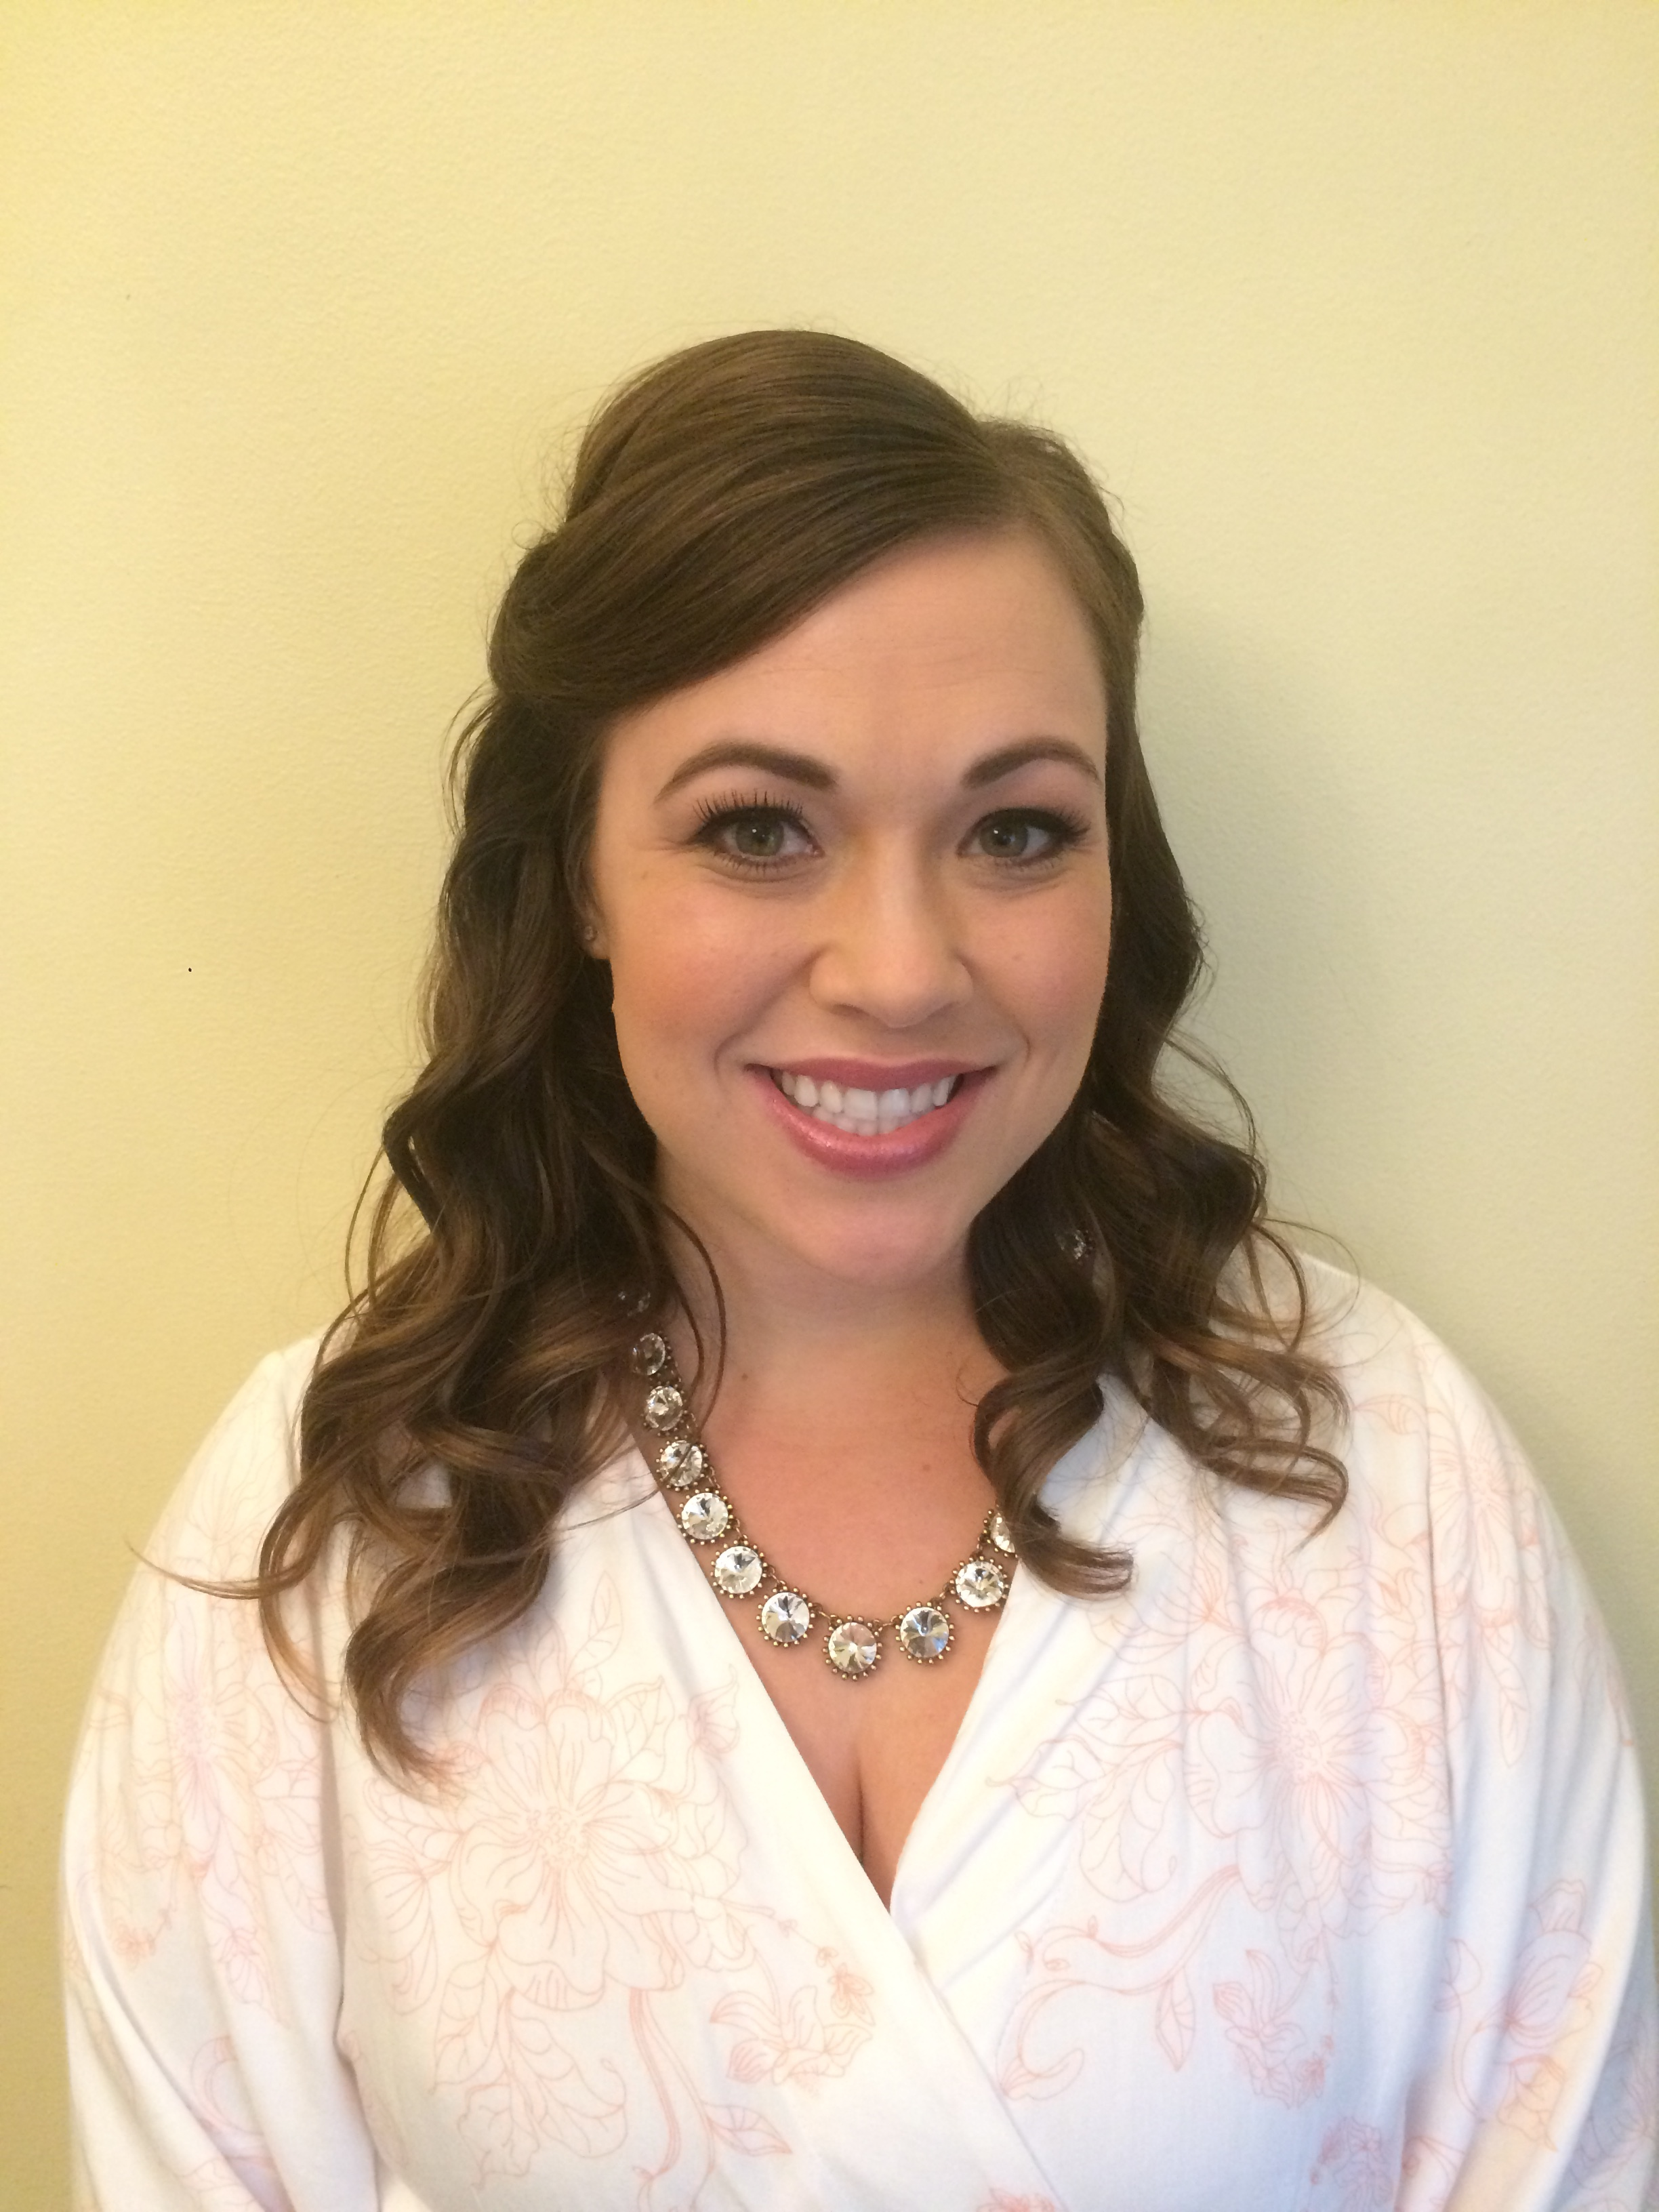 One of the Bridesmaids from the bridal party that received wedding hair and makeup services with Santa Barbara Bride.